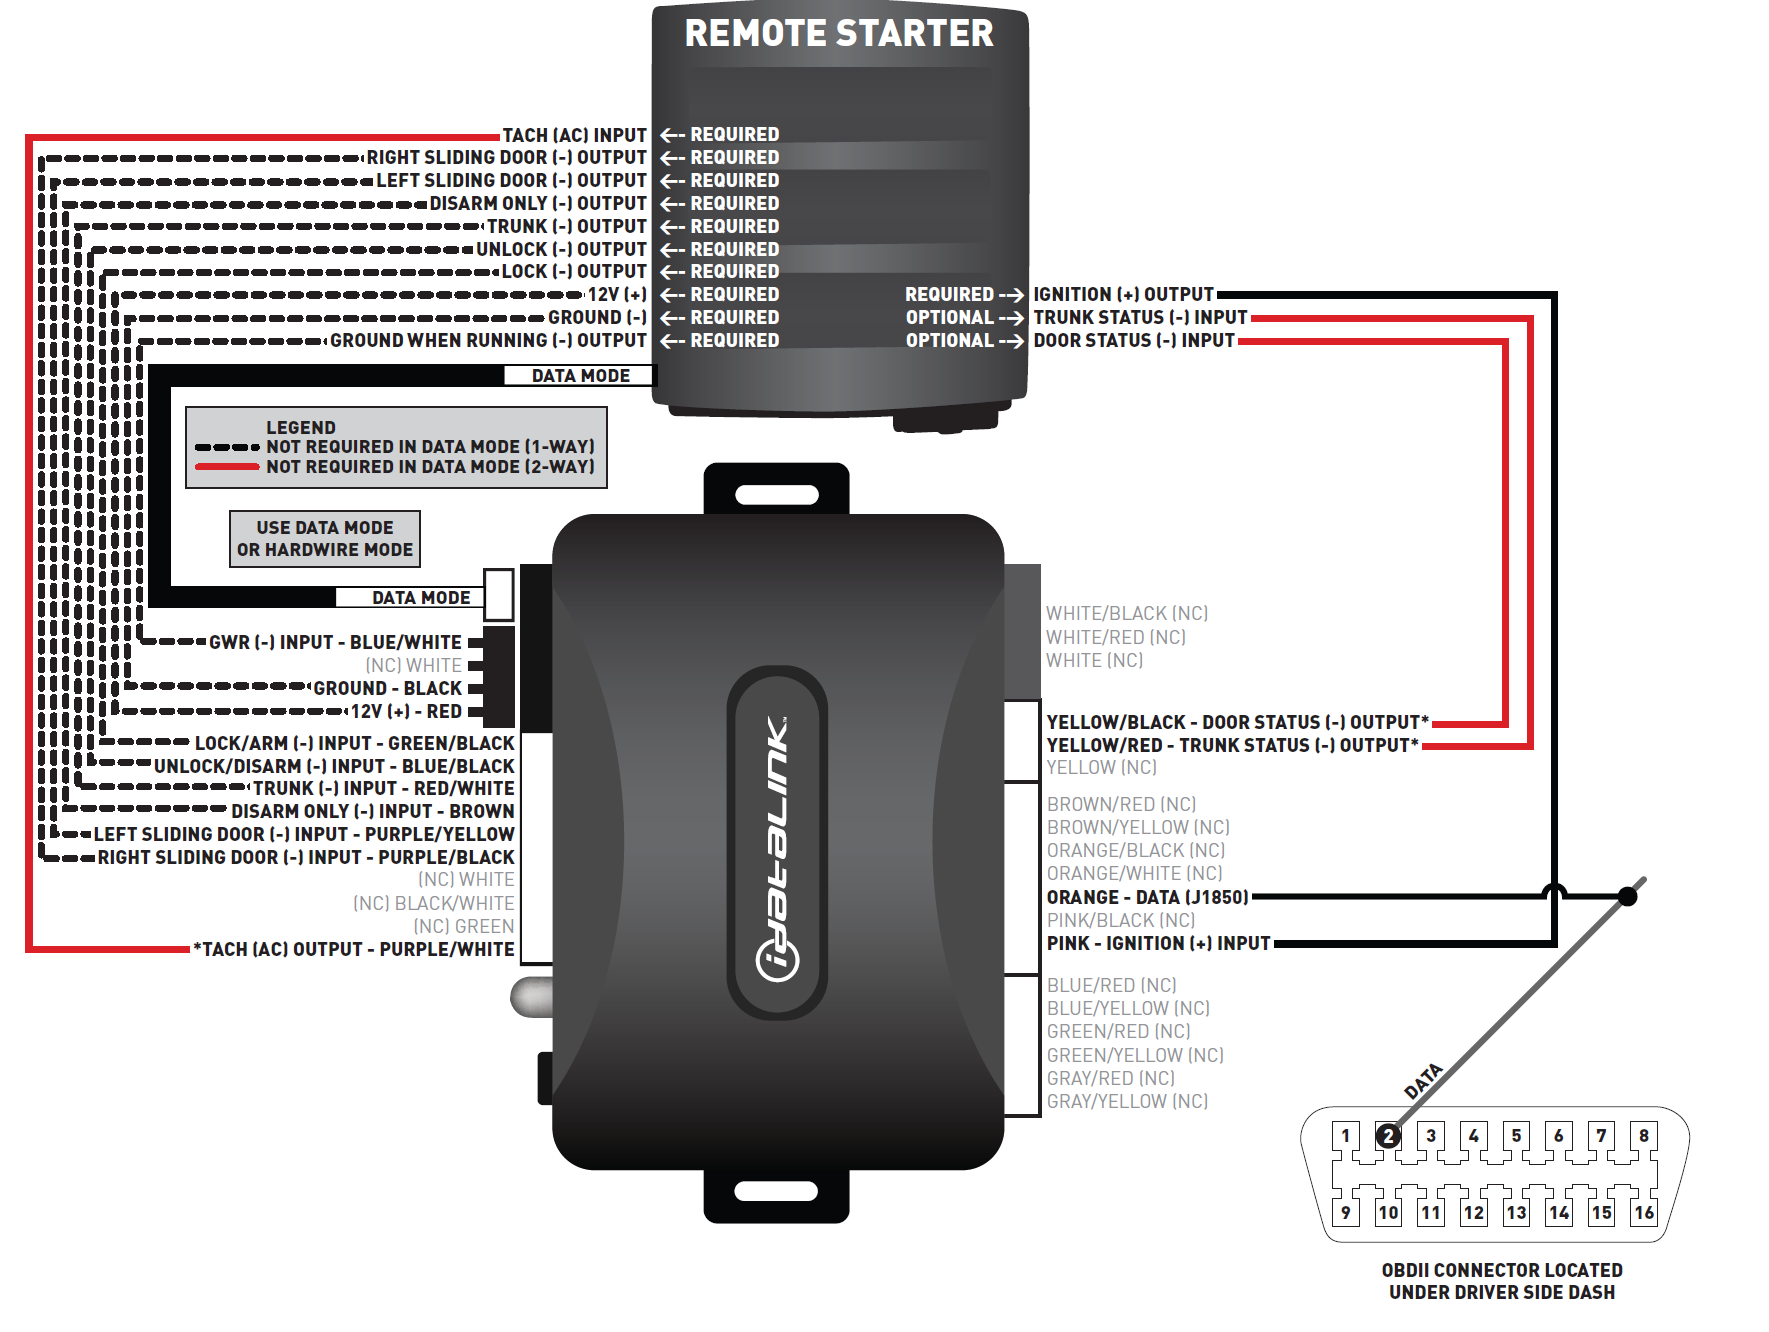 Wiring Diagram For Autostart Remote Starter : Commando car wiring diagrams for remote starter